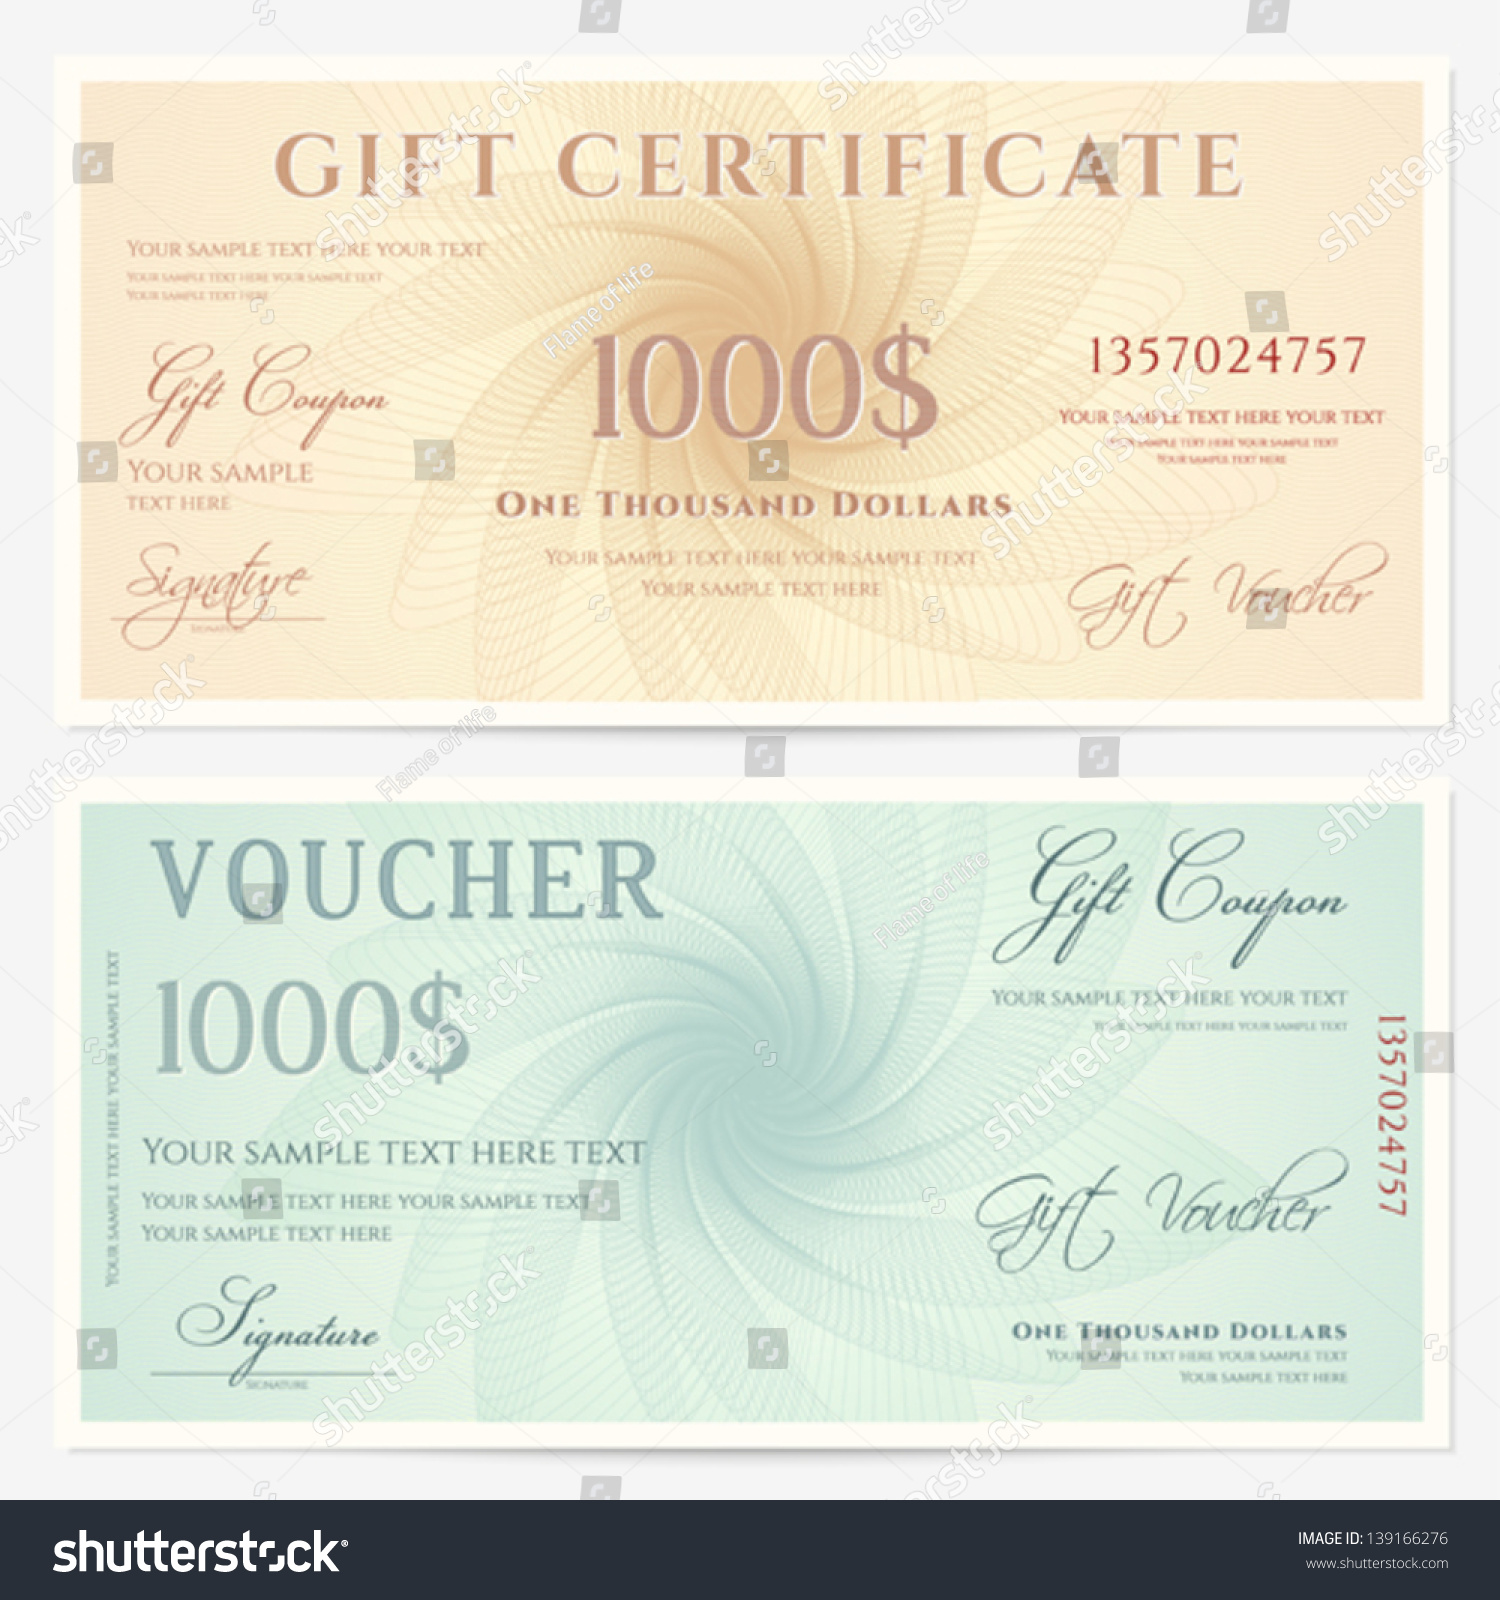 Gift certificate voucher template guilloche pattern stock for Cheque voucher template